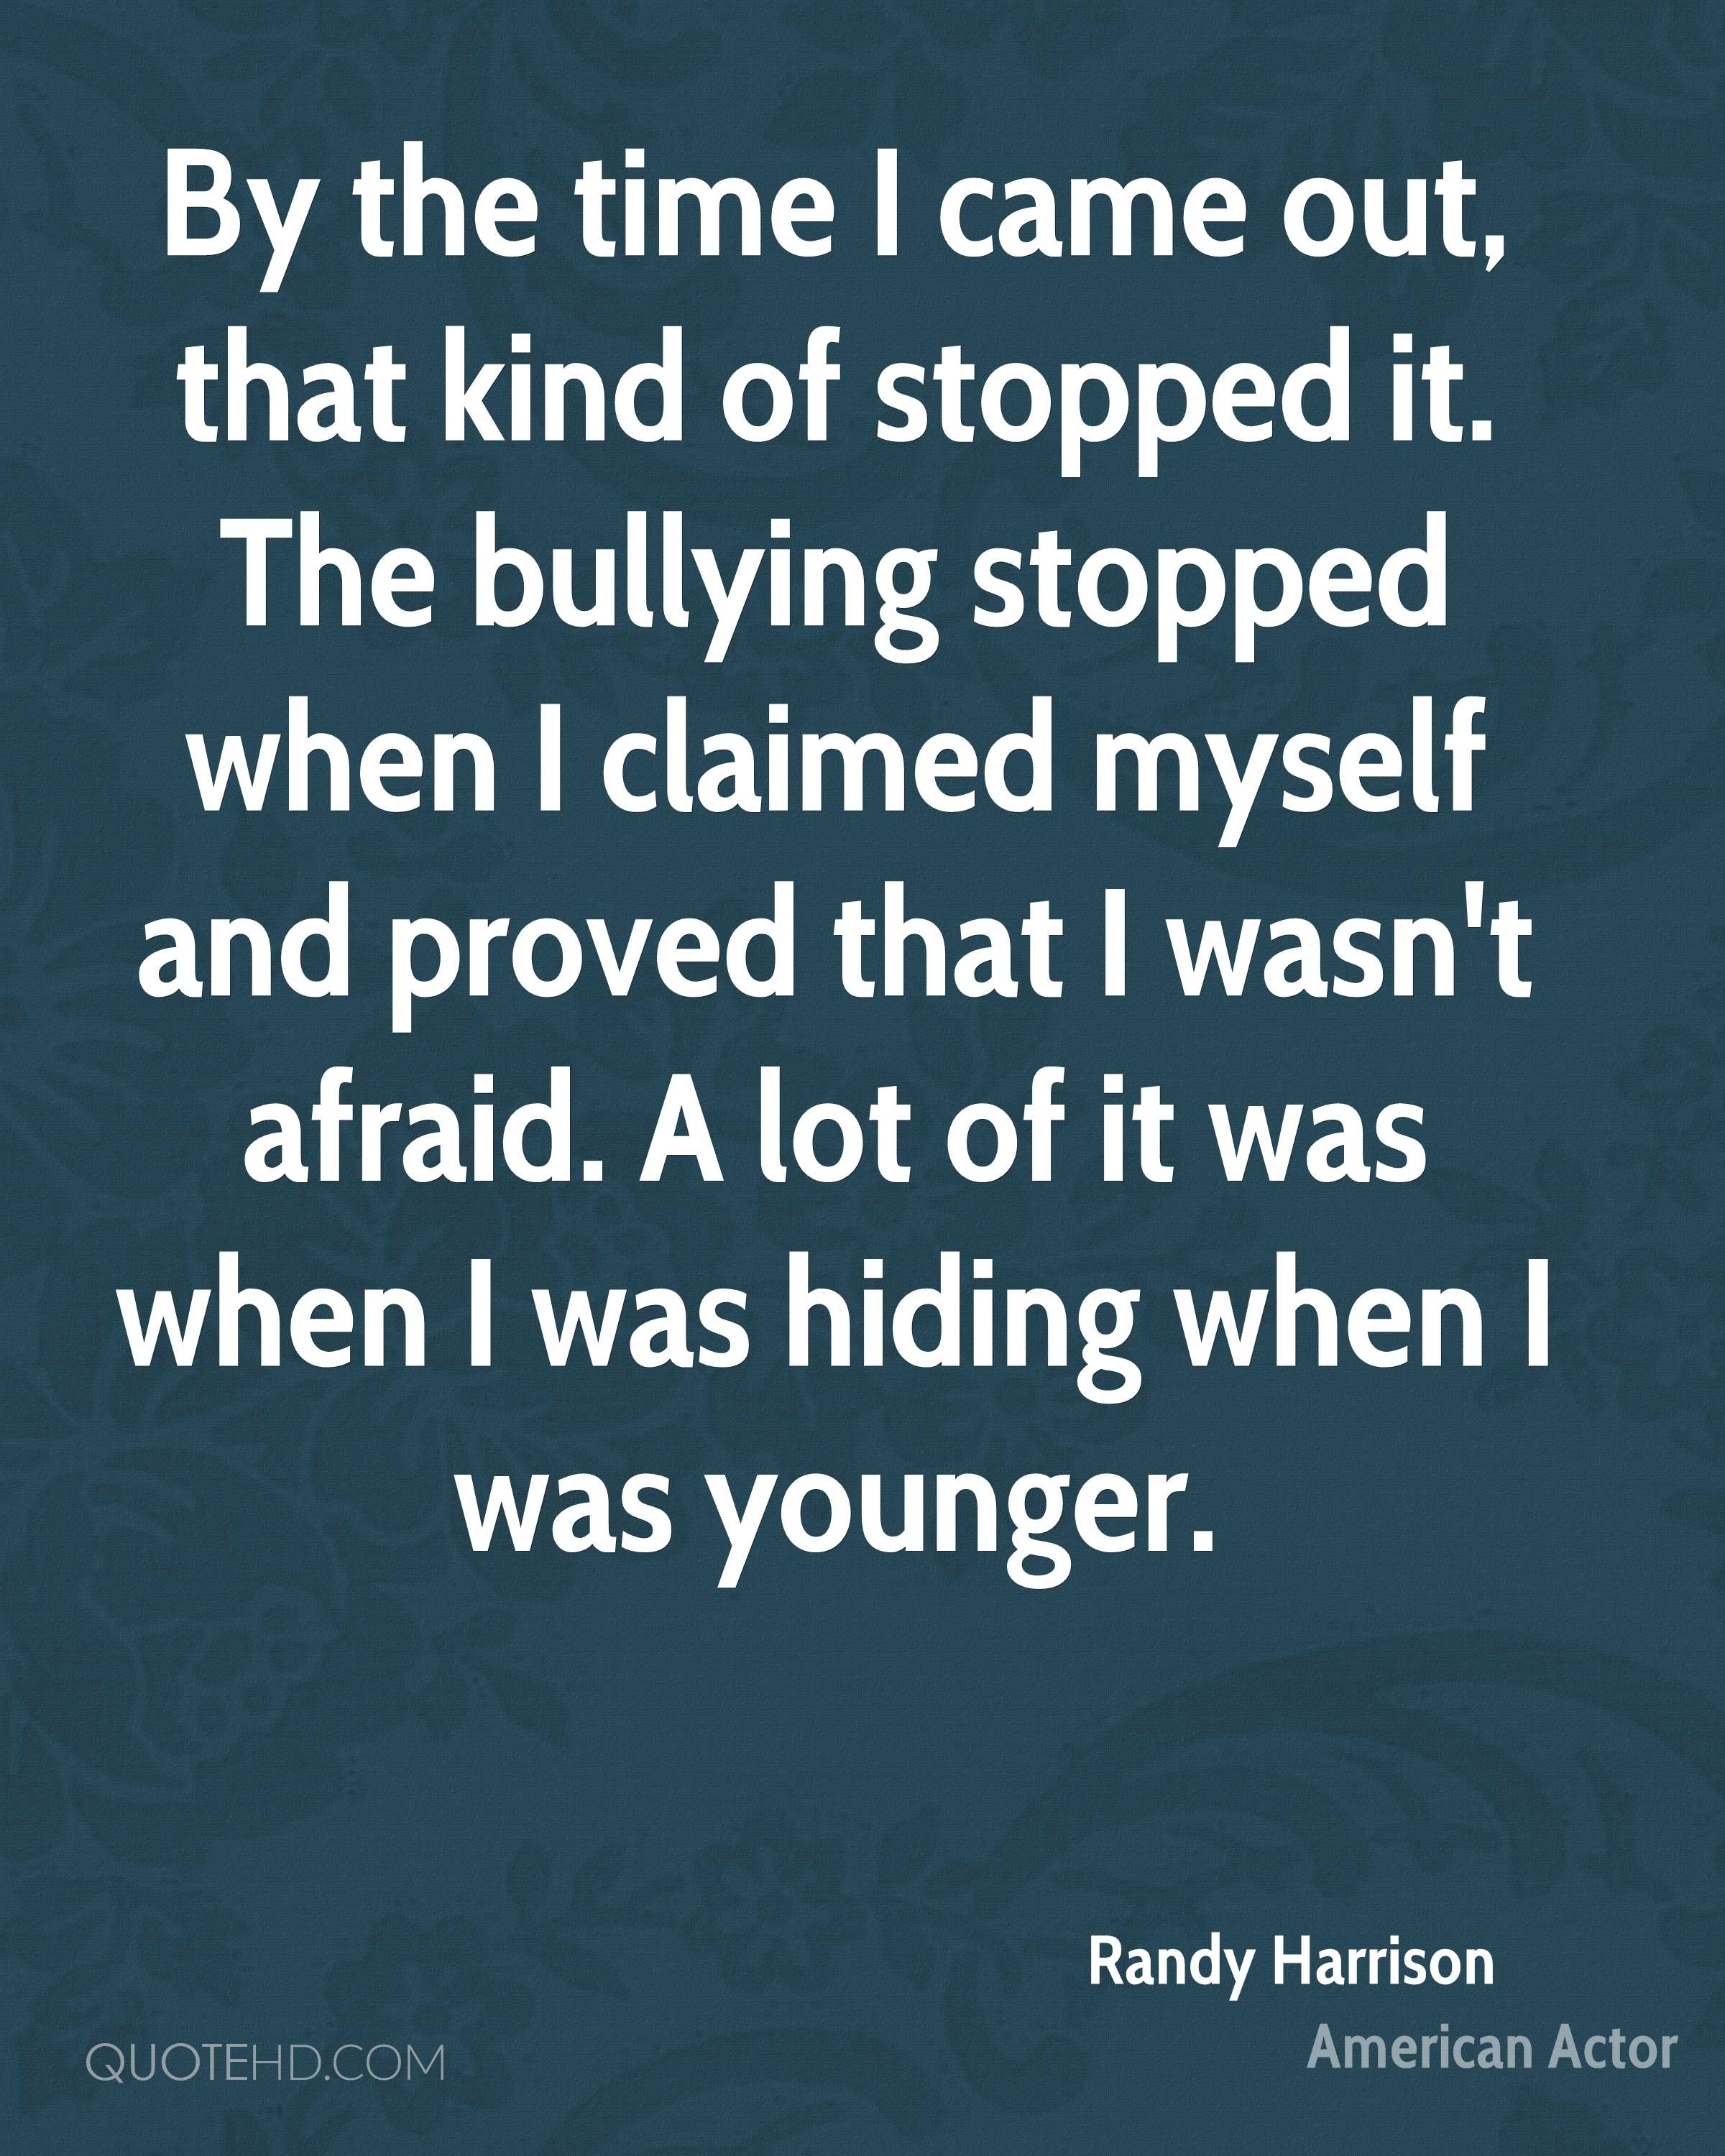 By the time I came out, that kind of stopped it. The bullying stopped when I claimed myself and proved that I wasn't afraid. A lot of it was when I was hiding when I was younger.